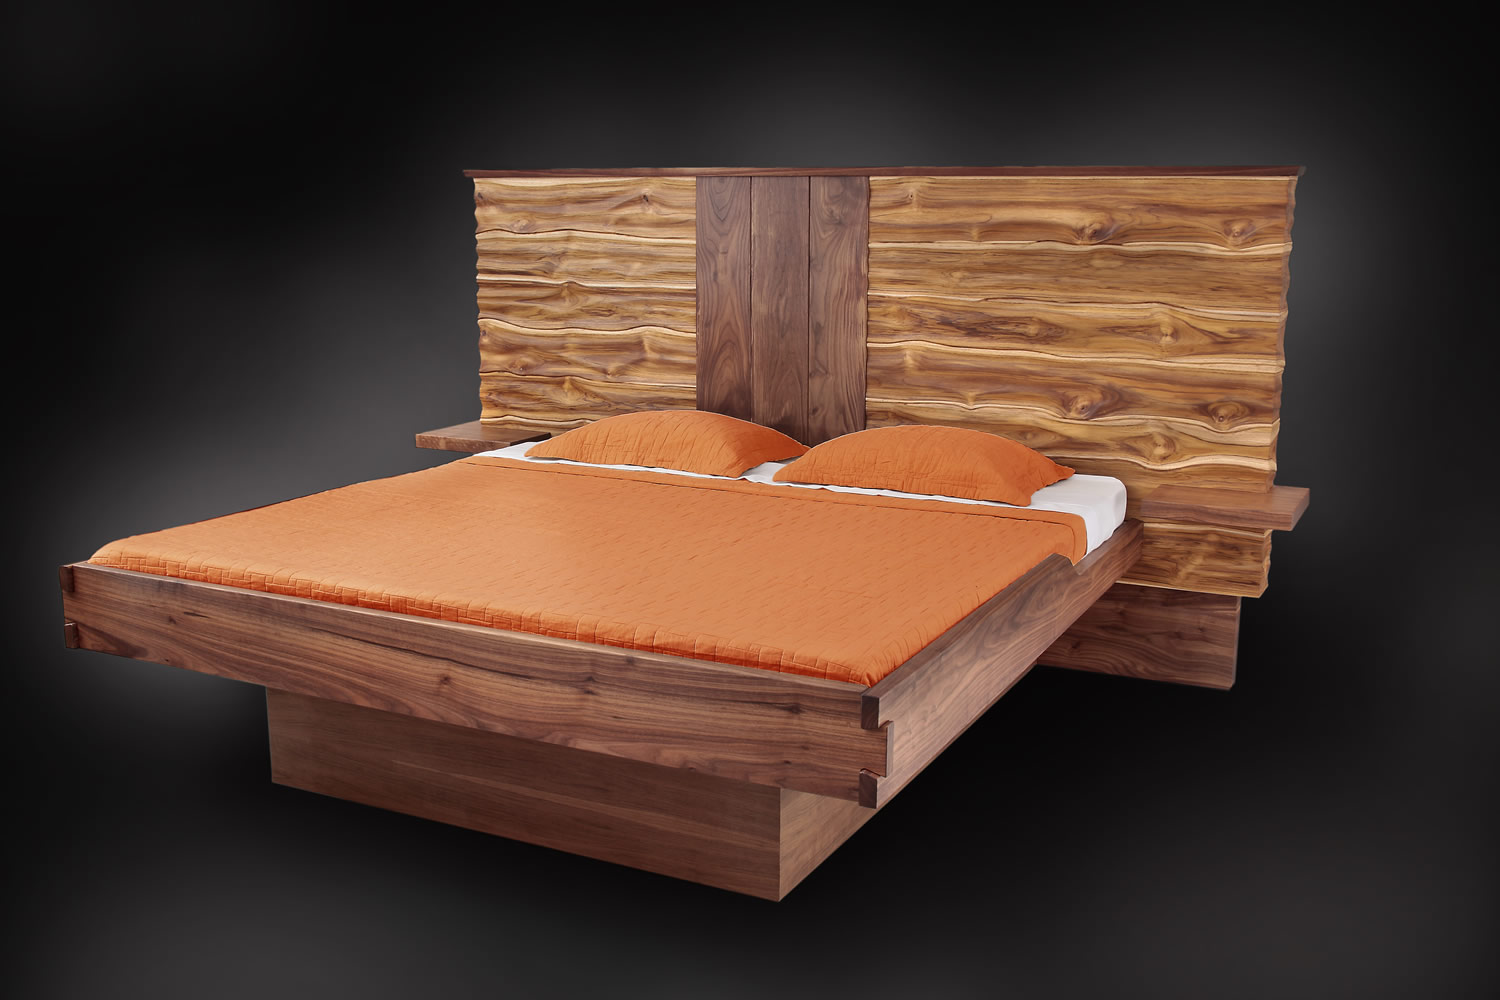 Organic Bed by Jory Brigham Design